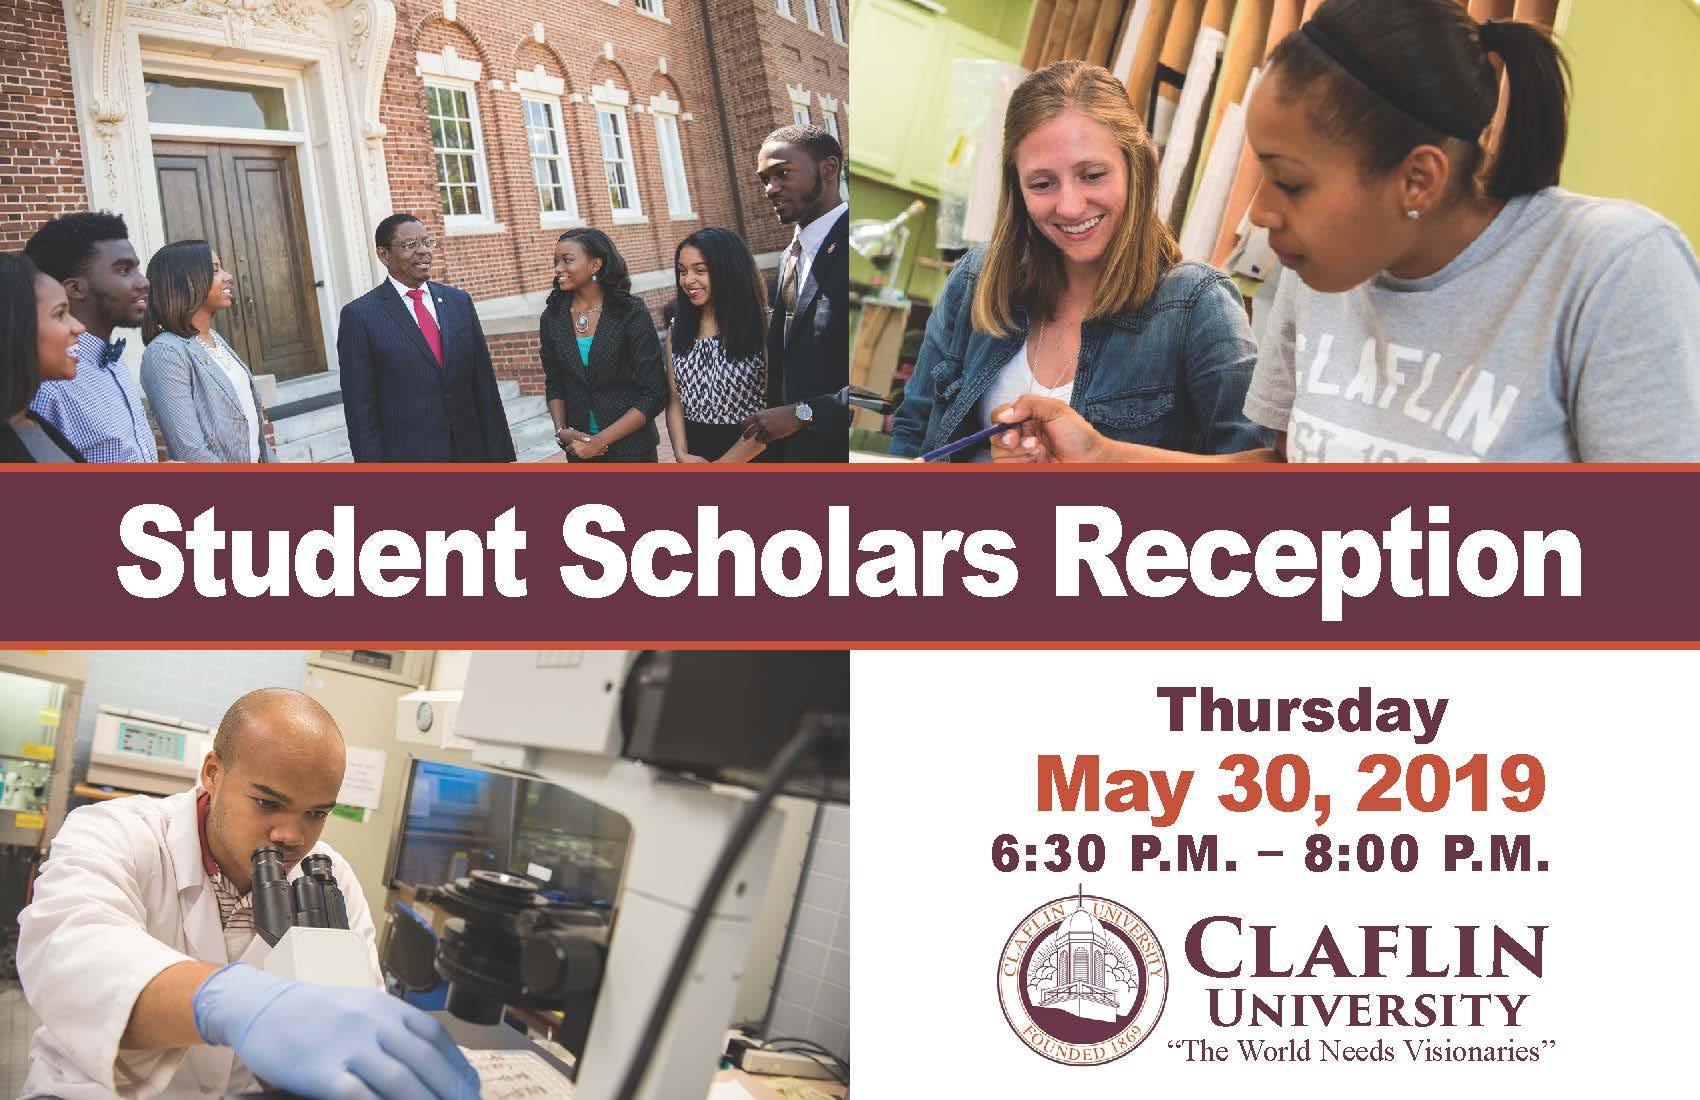 Student Recruitment Reception - THURSDAY MAY 30 Effingham SC _Page_1